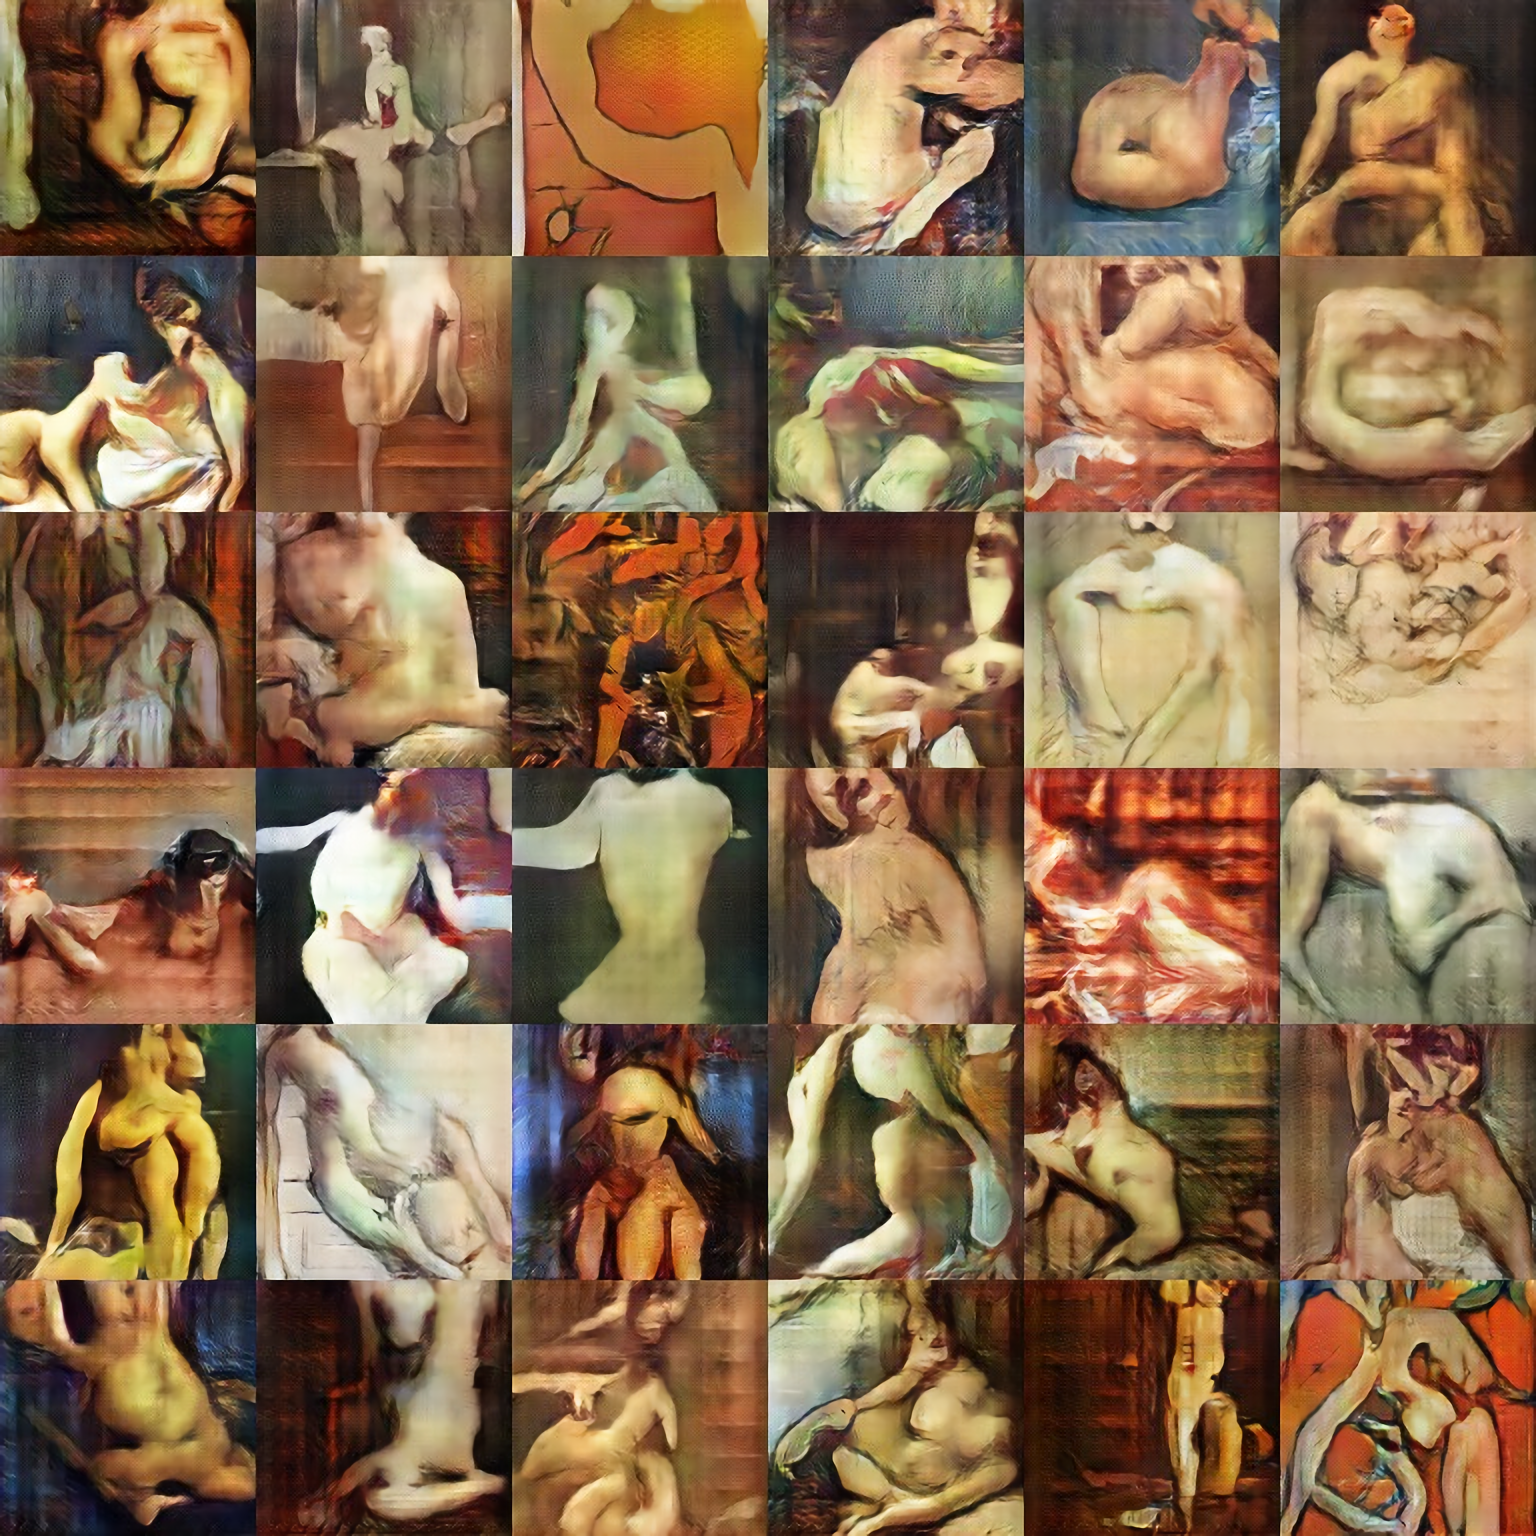 Batch of Nude-Portraits